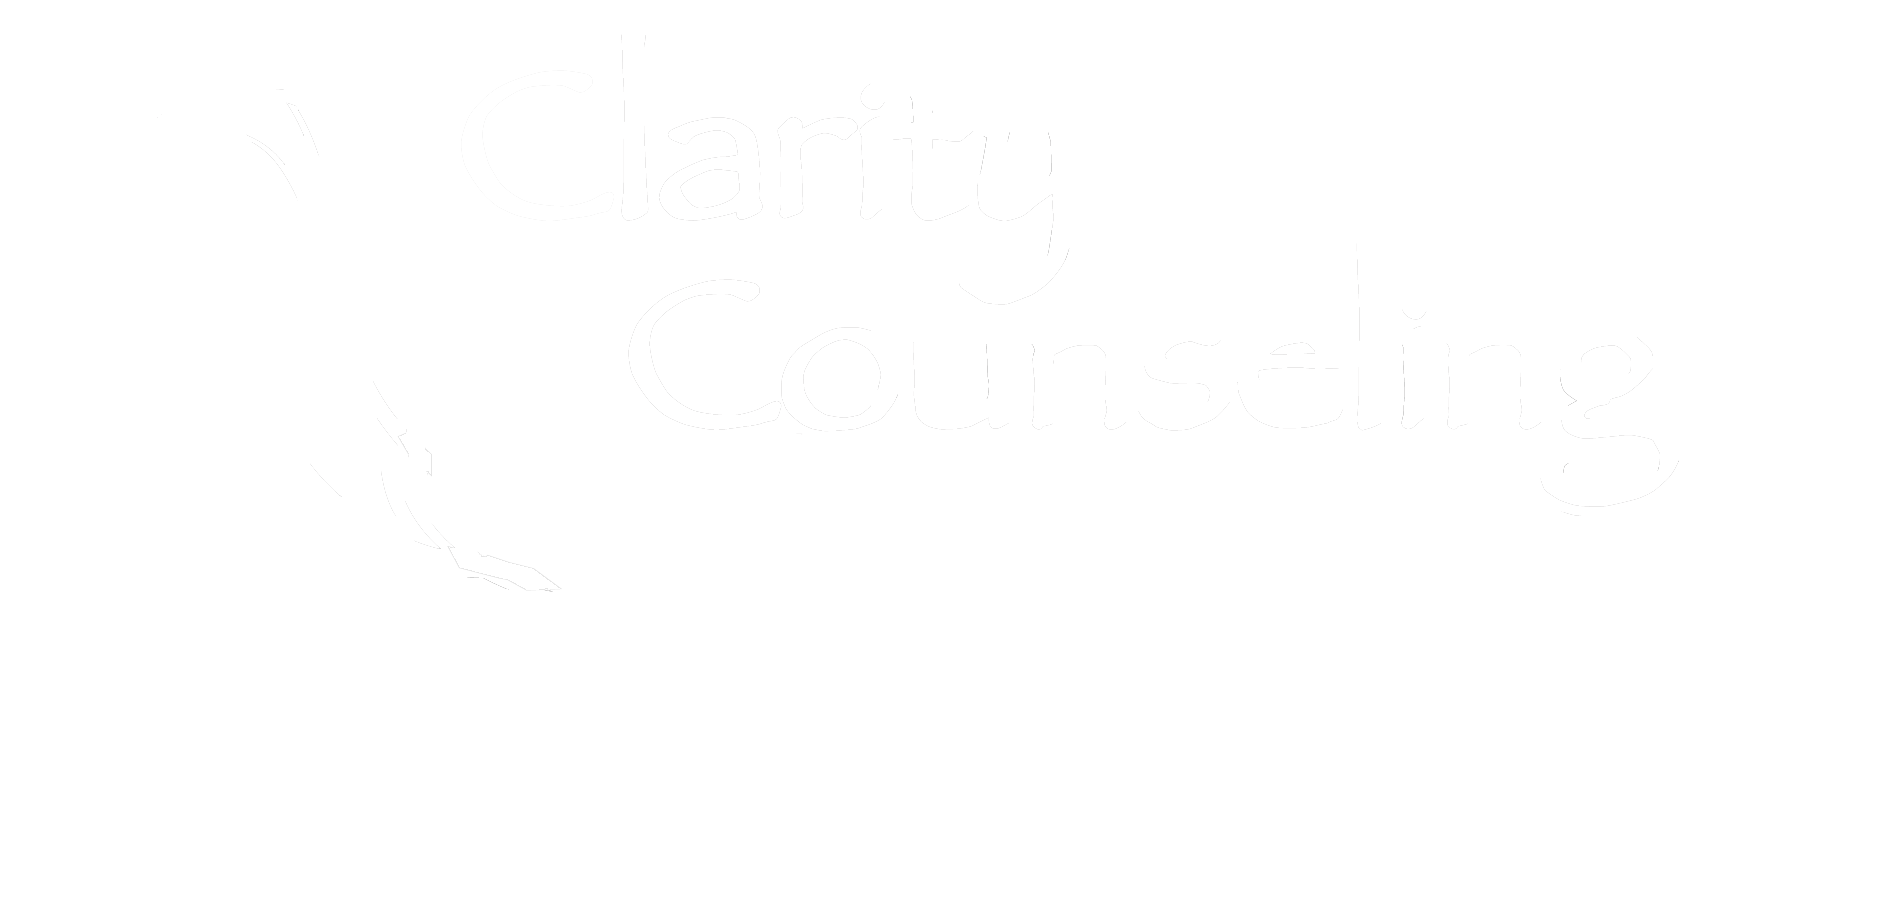 Clarity Counseling, Counselors in Fargo